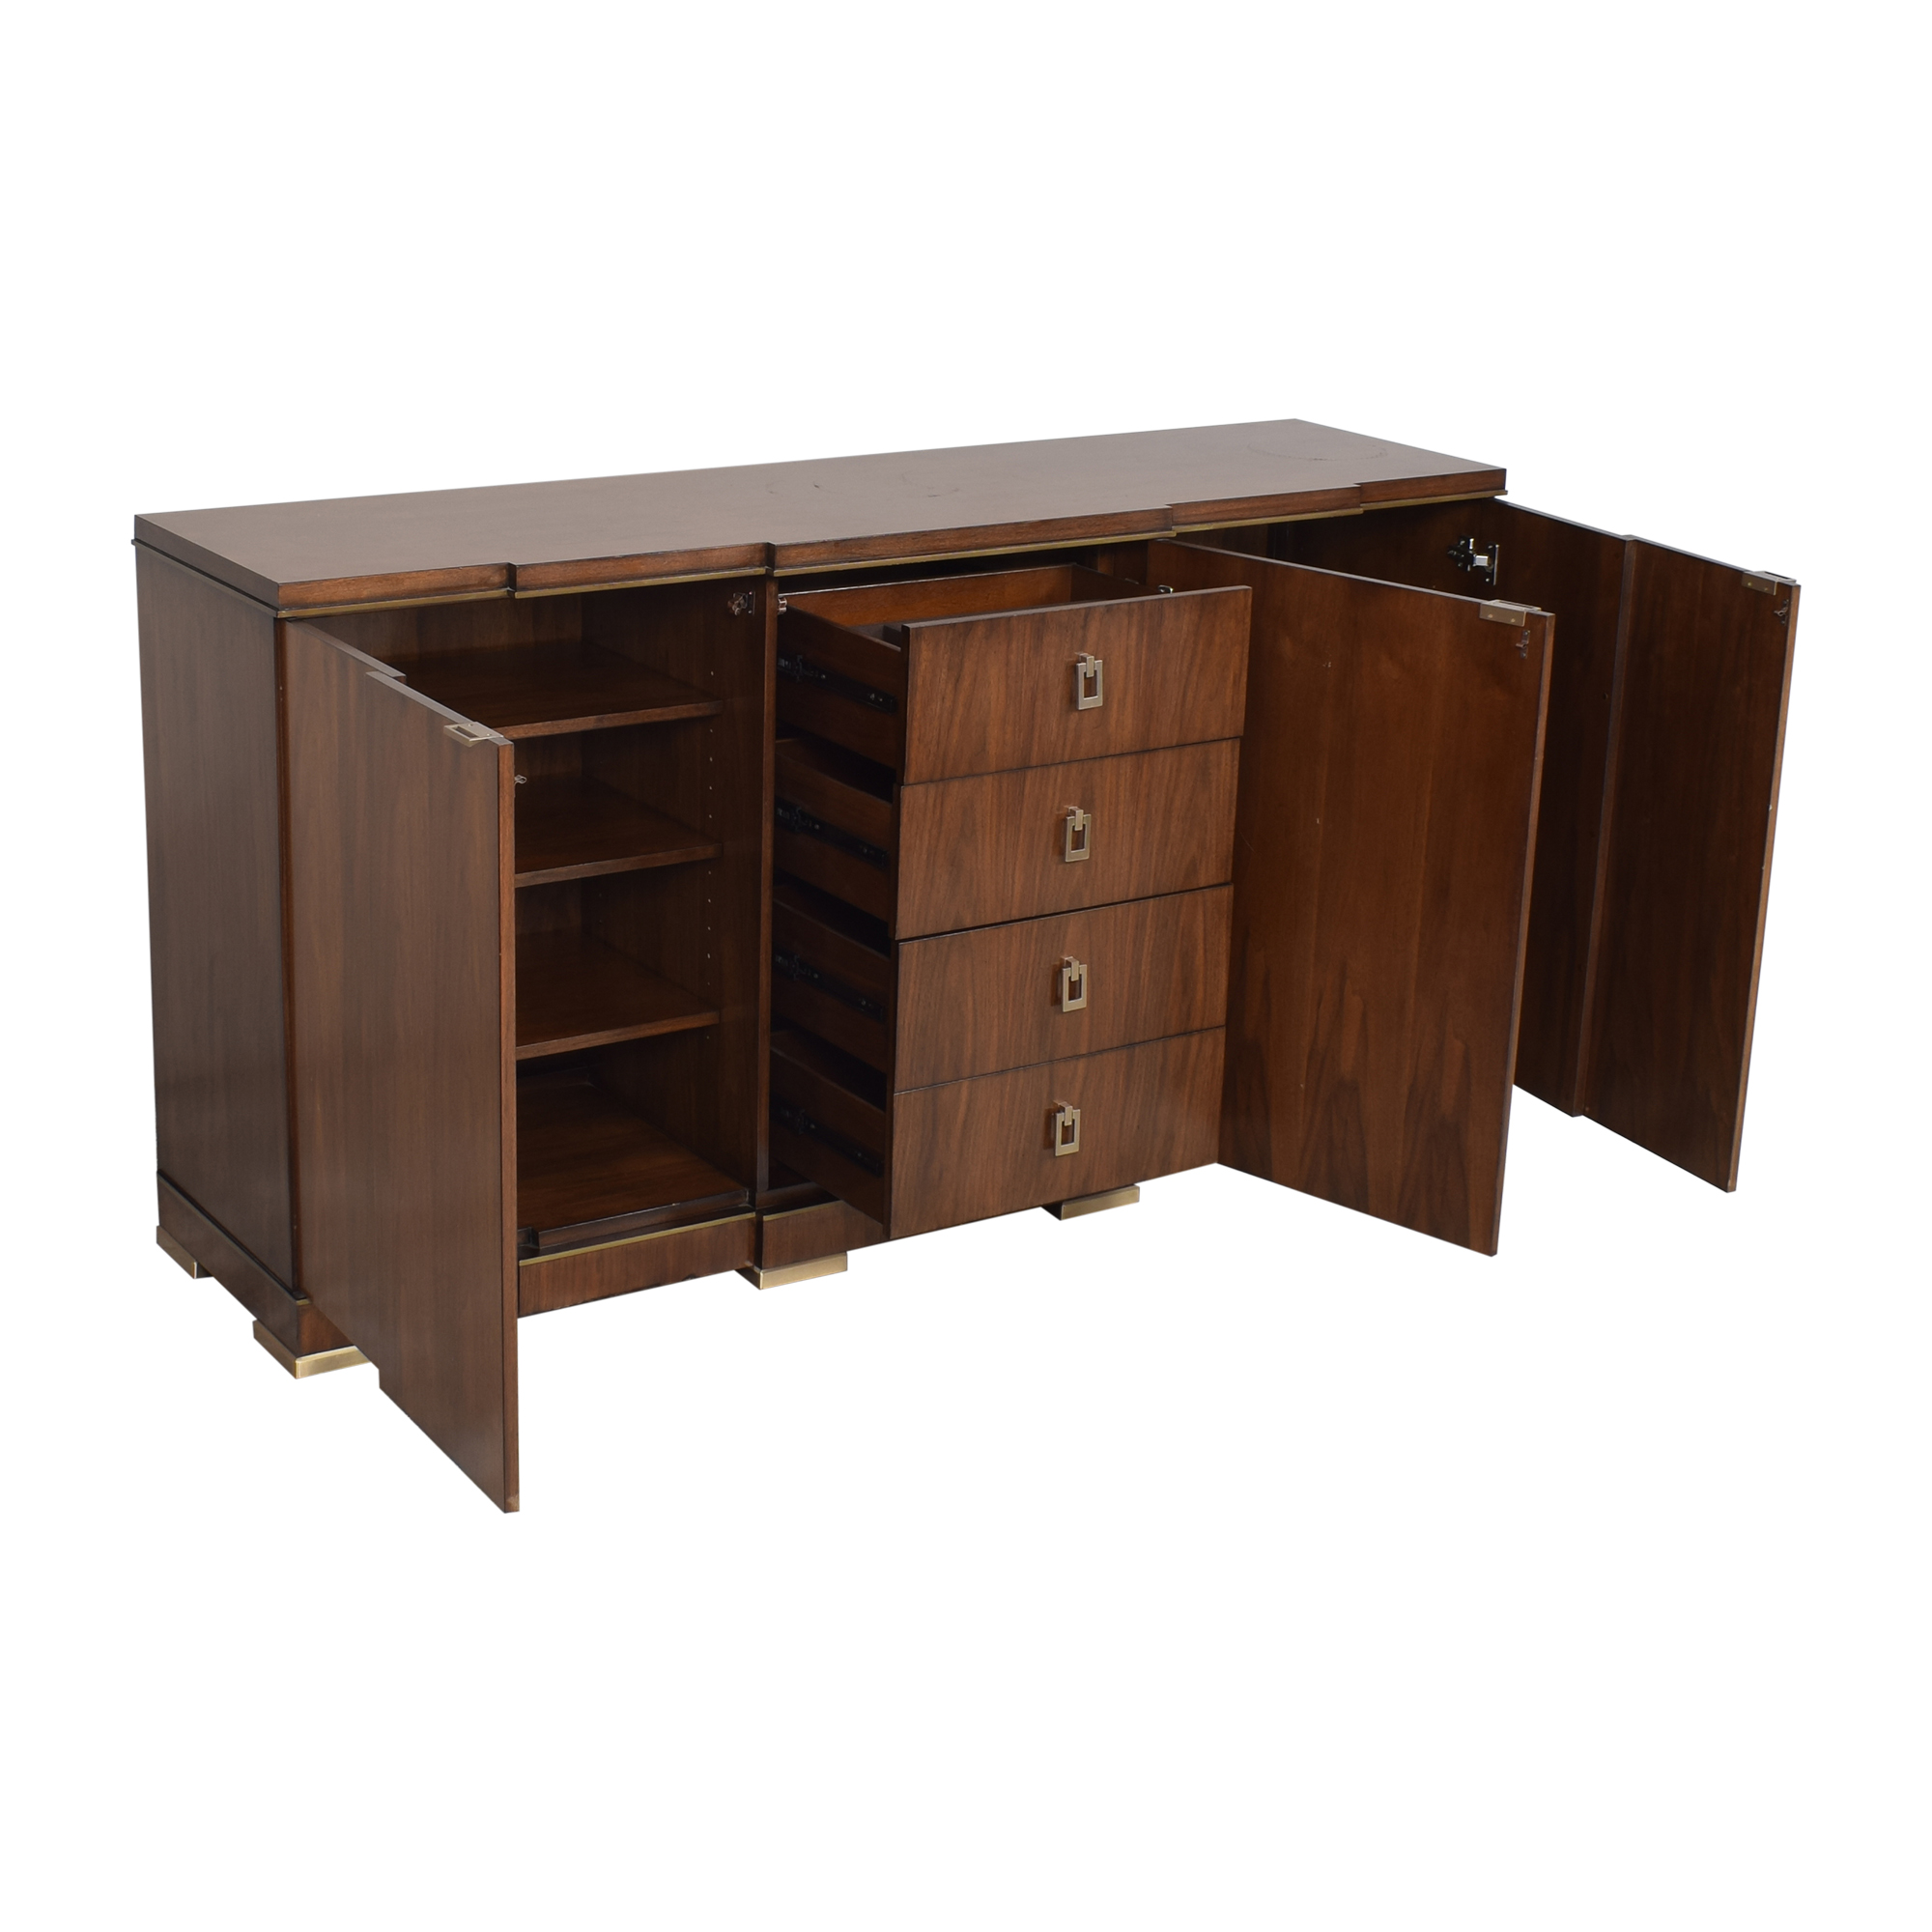 Lexington Tower Place Collection Highland Park Buffet / Cabinets & Sideboards